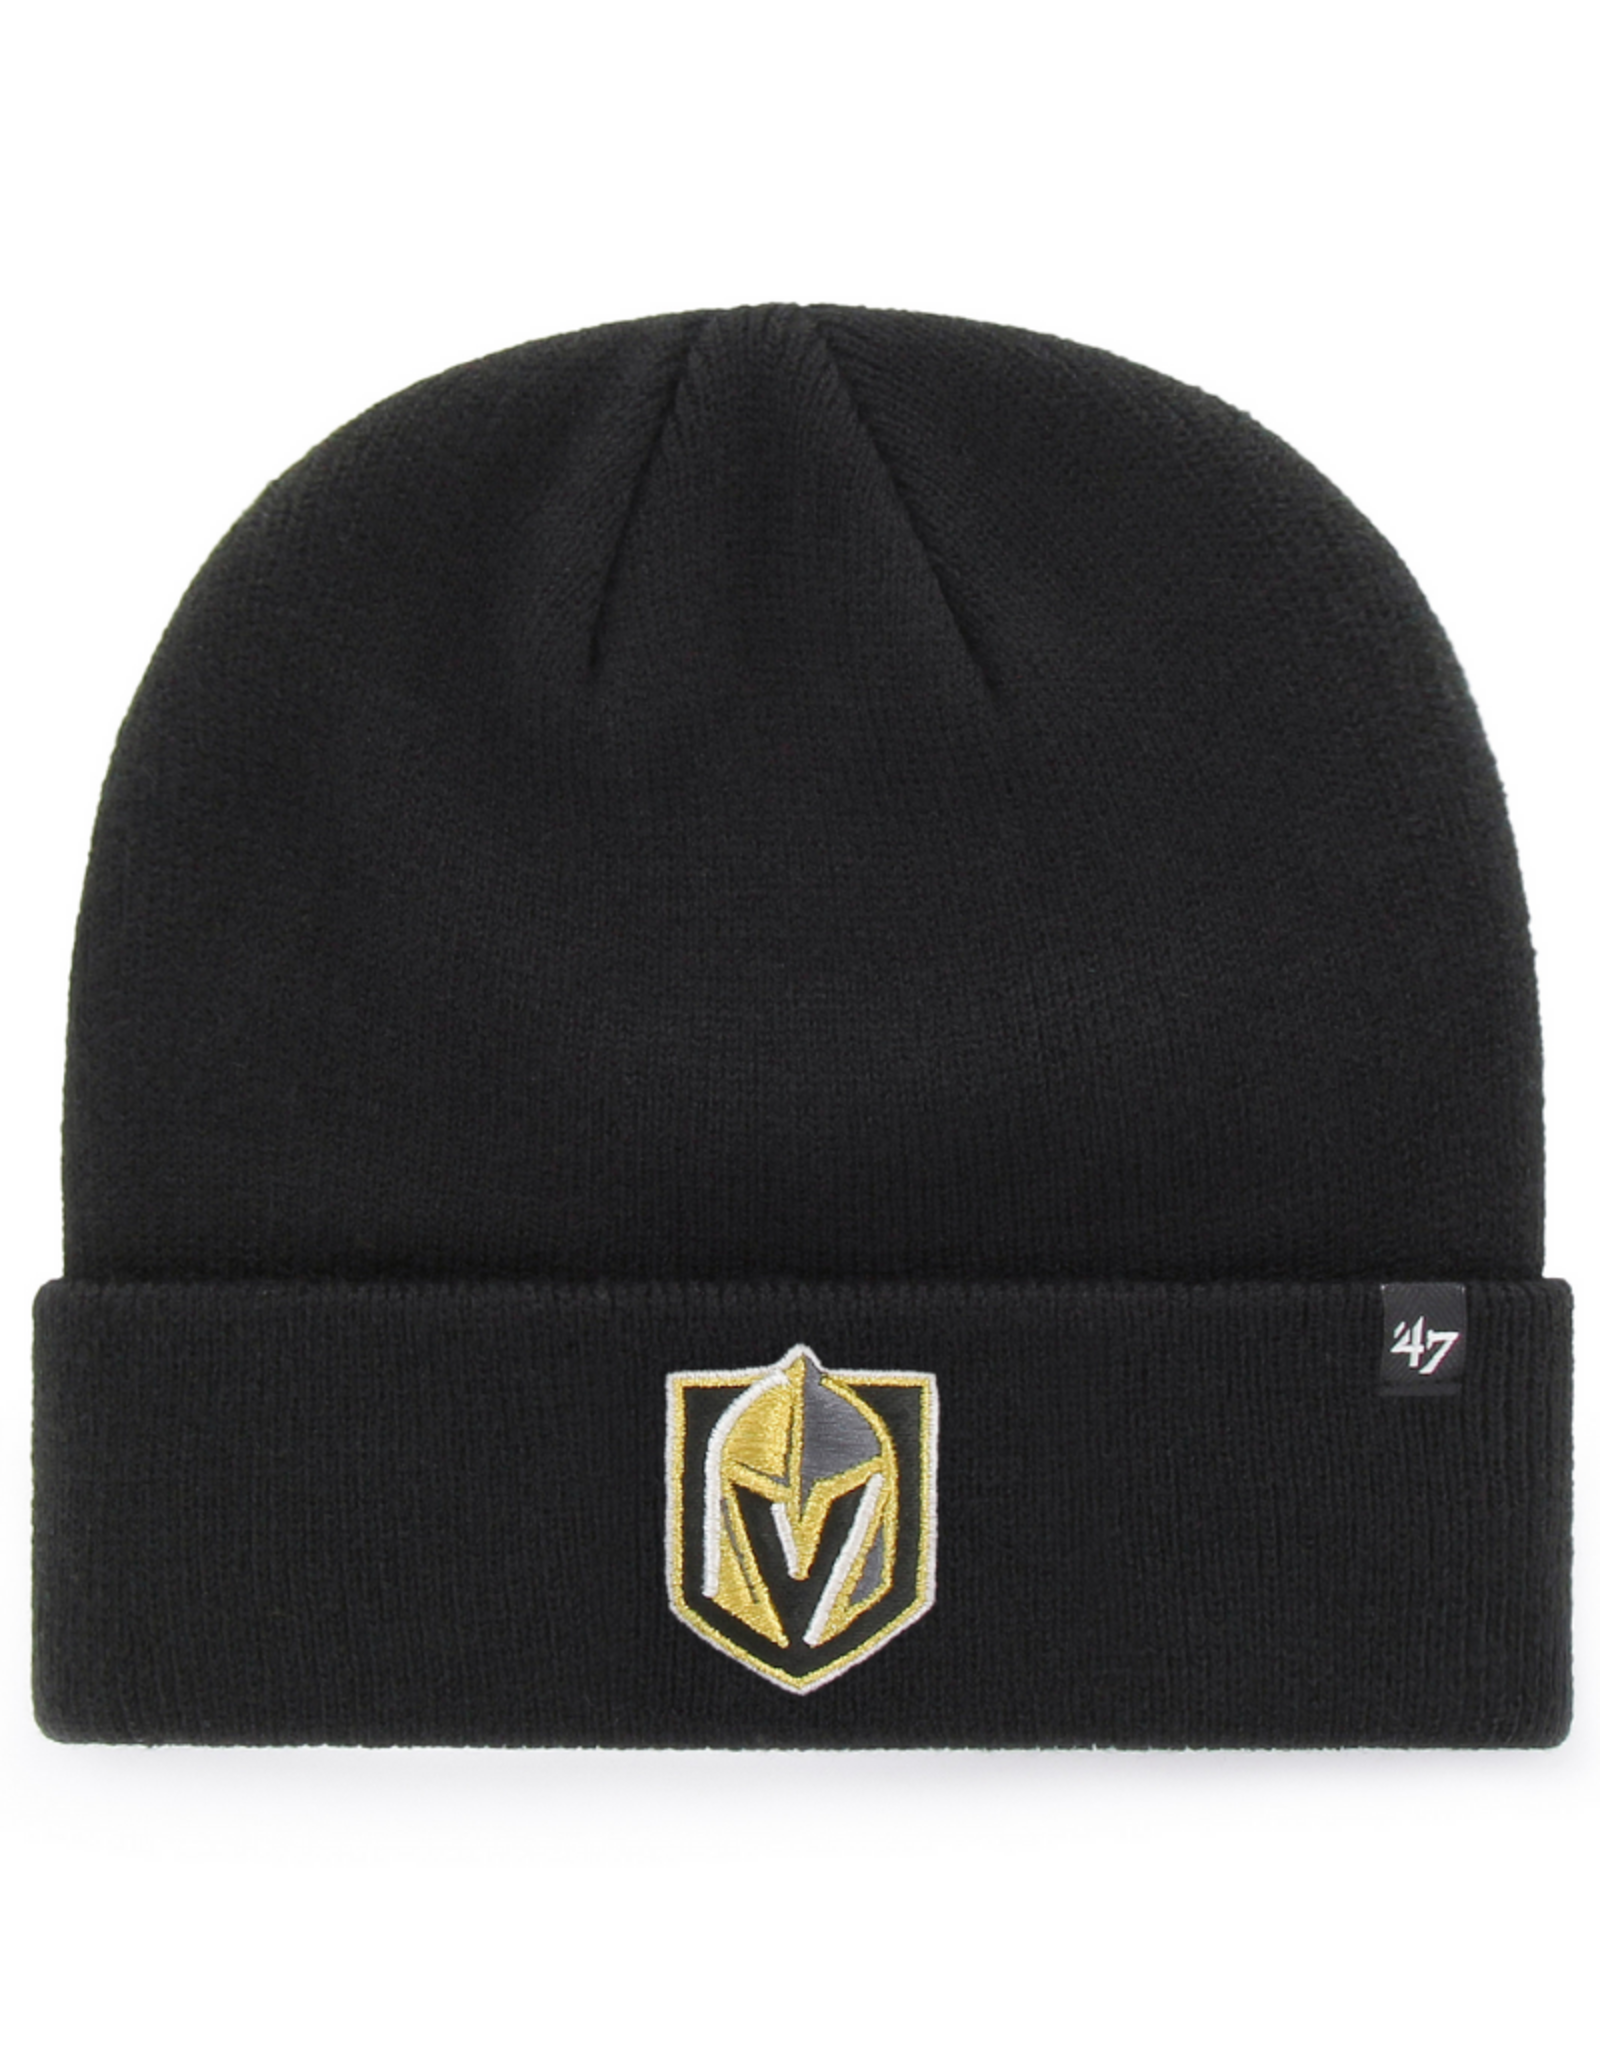 '47 Adult Raised Cuff Knit Vegas Golden Knights Black